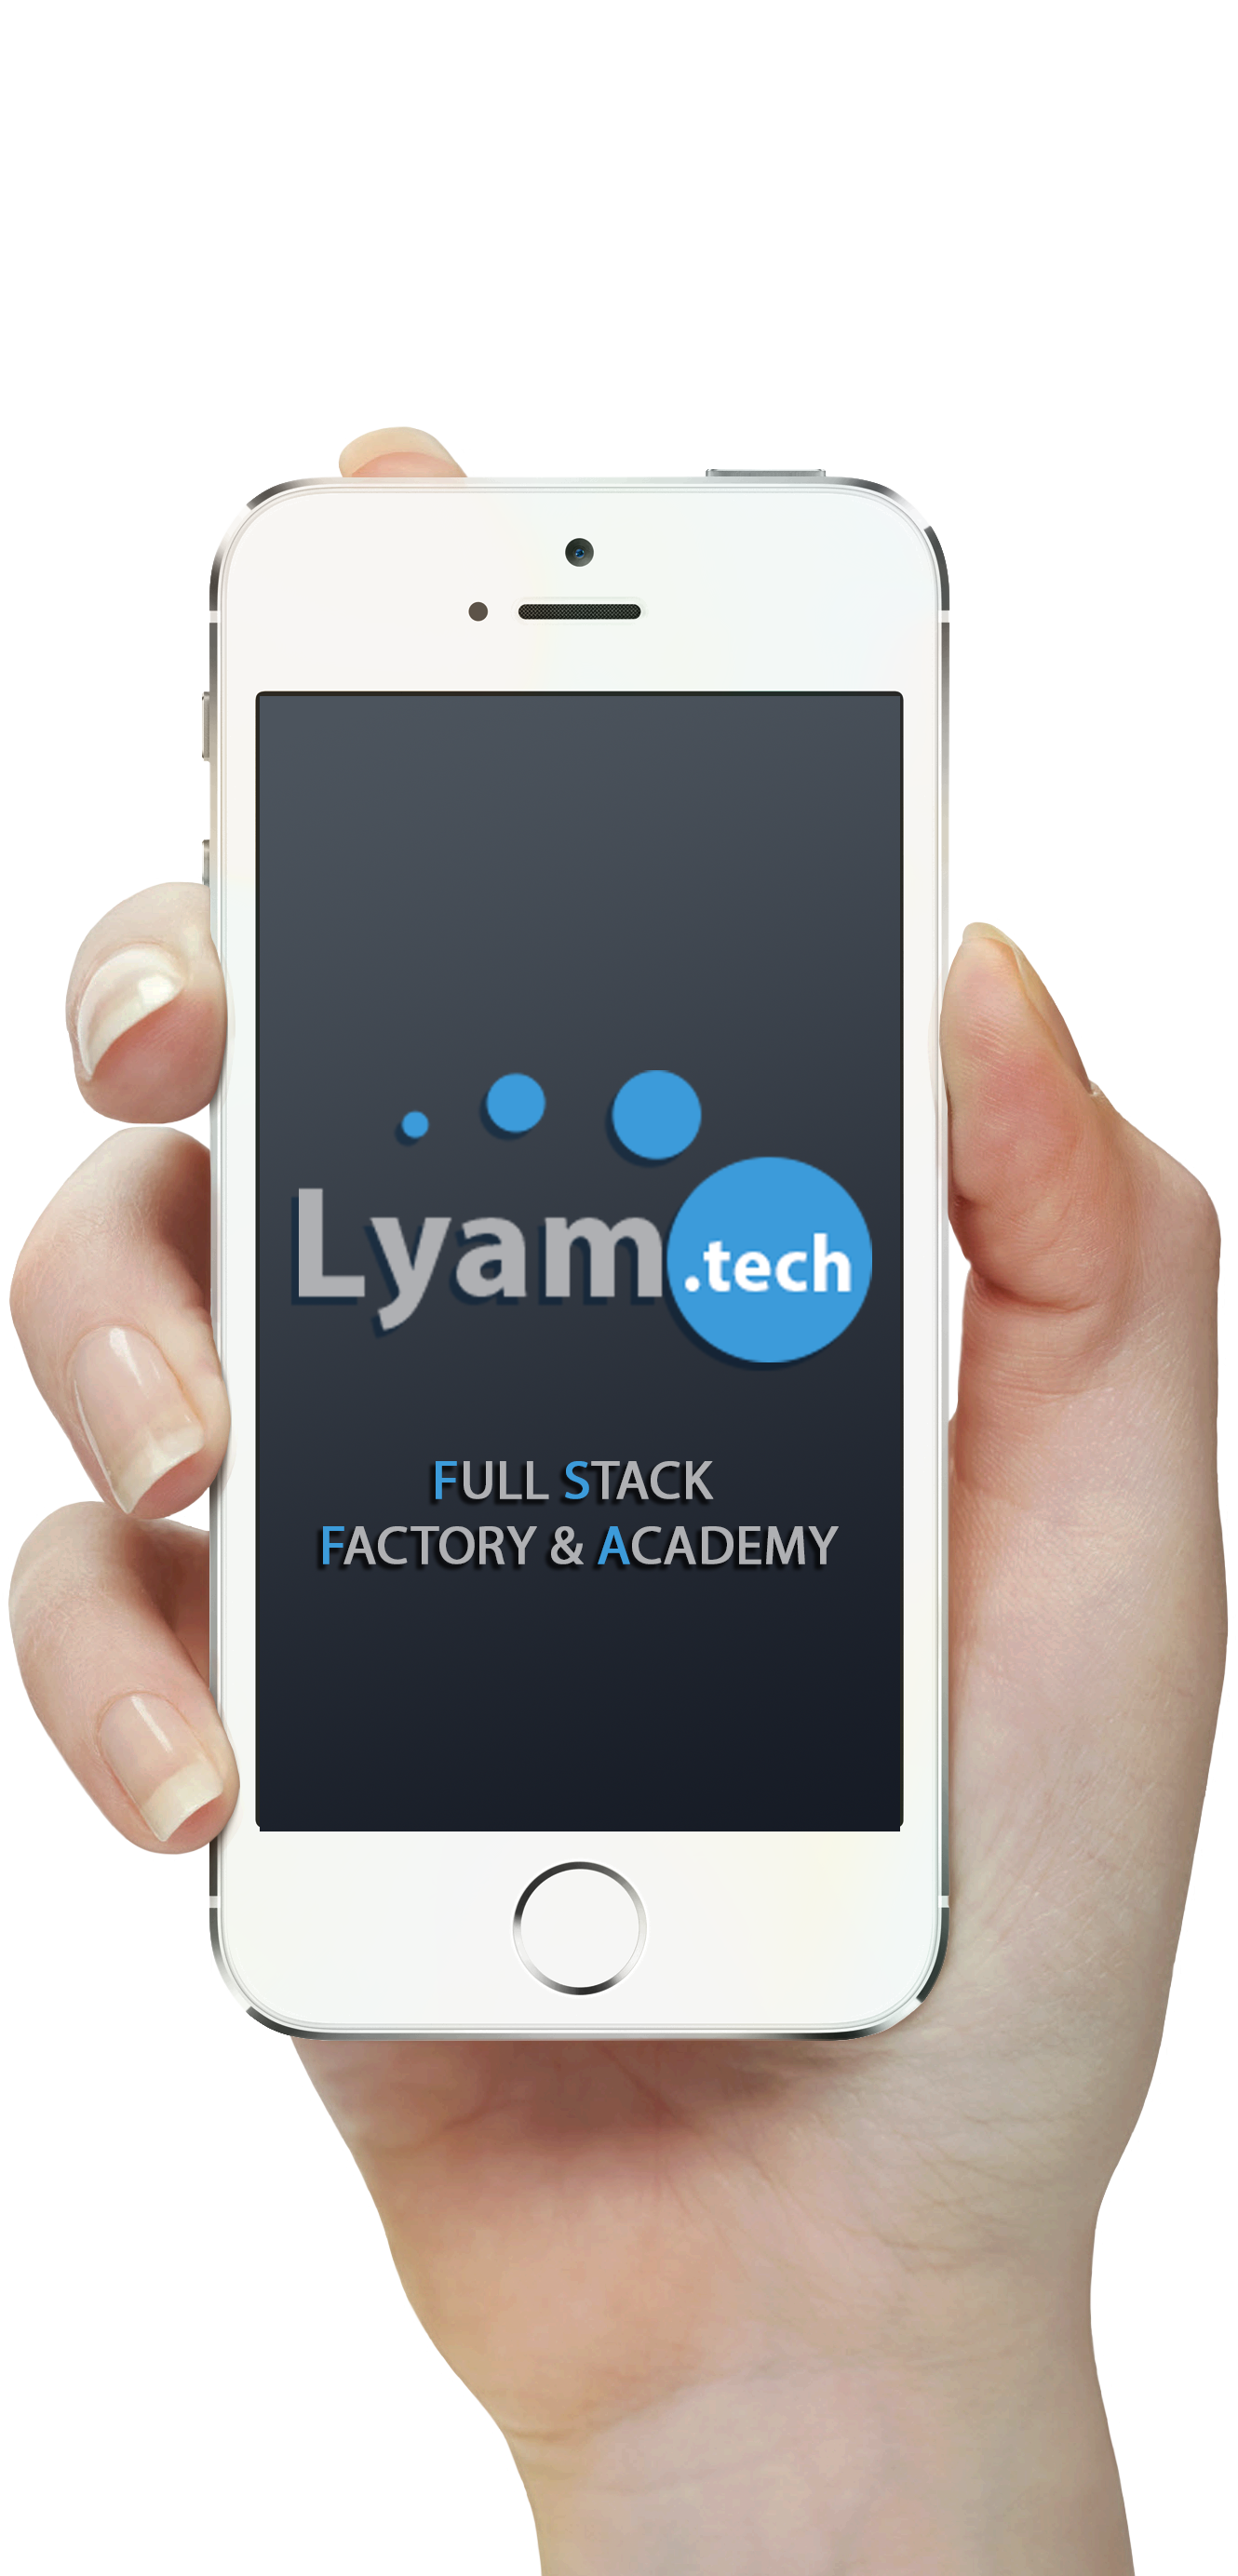 Lyam.tech - Full Stack Factory & Academy